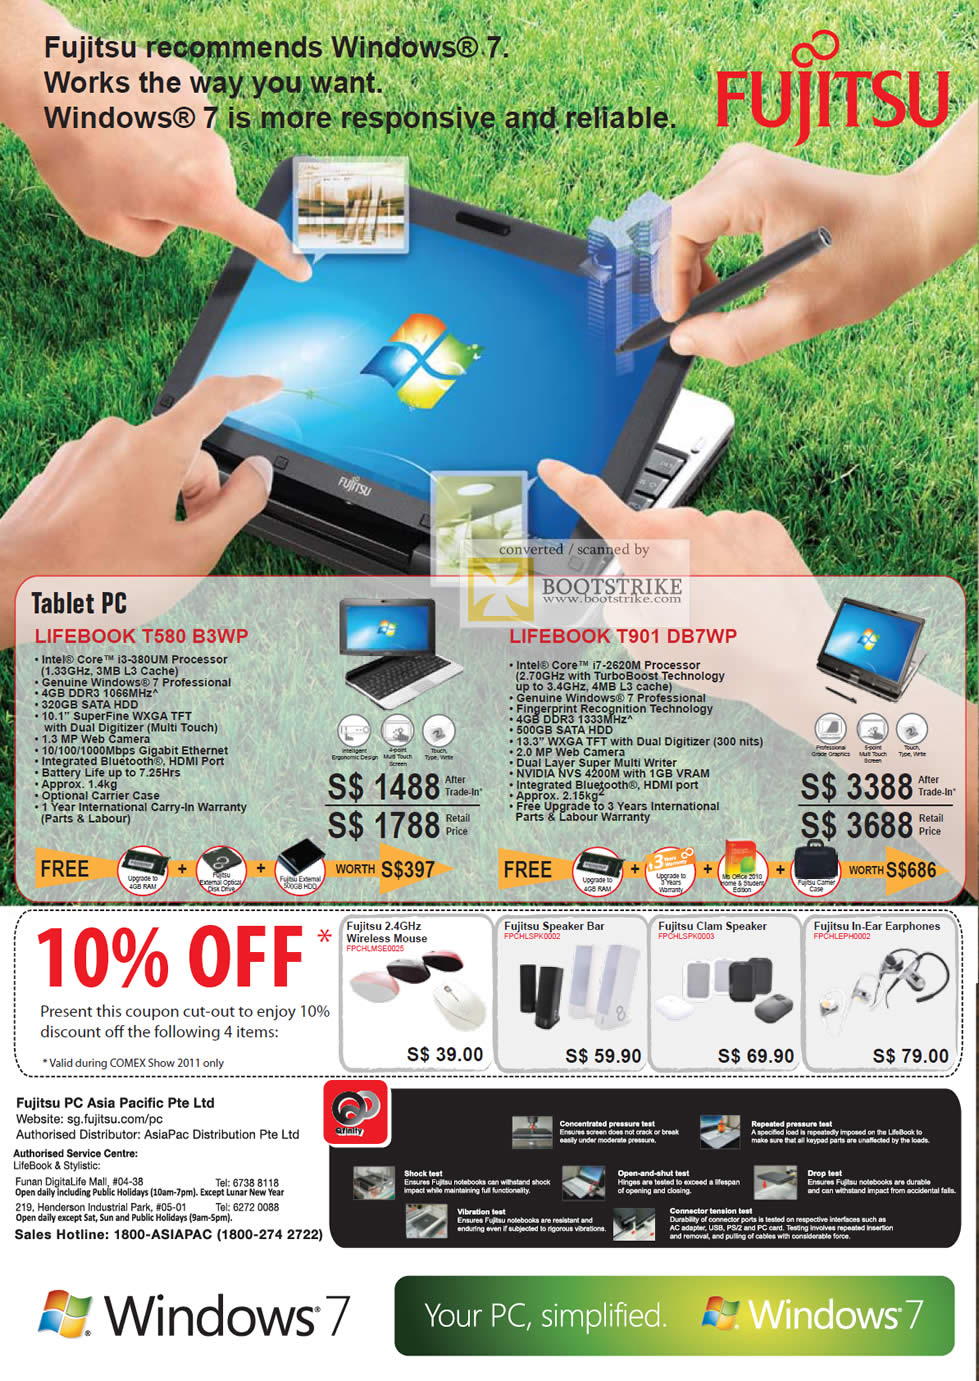 COMEX 2011 price list image brochure of Fujitsu Notebooks Lifebook Tablet T580 B3WP T901 DB7WP Coupons